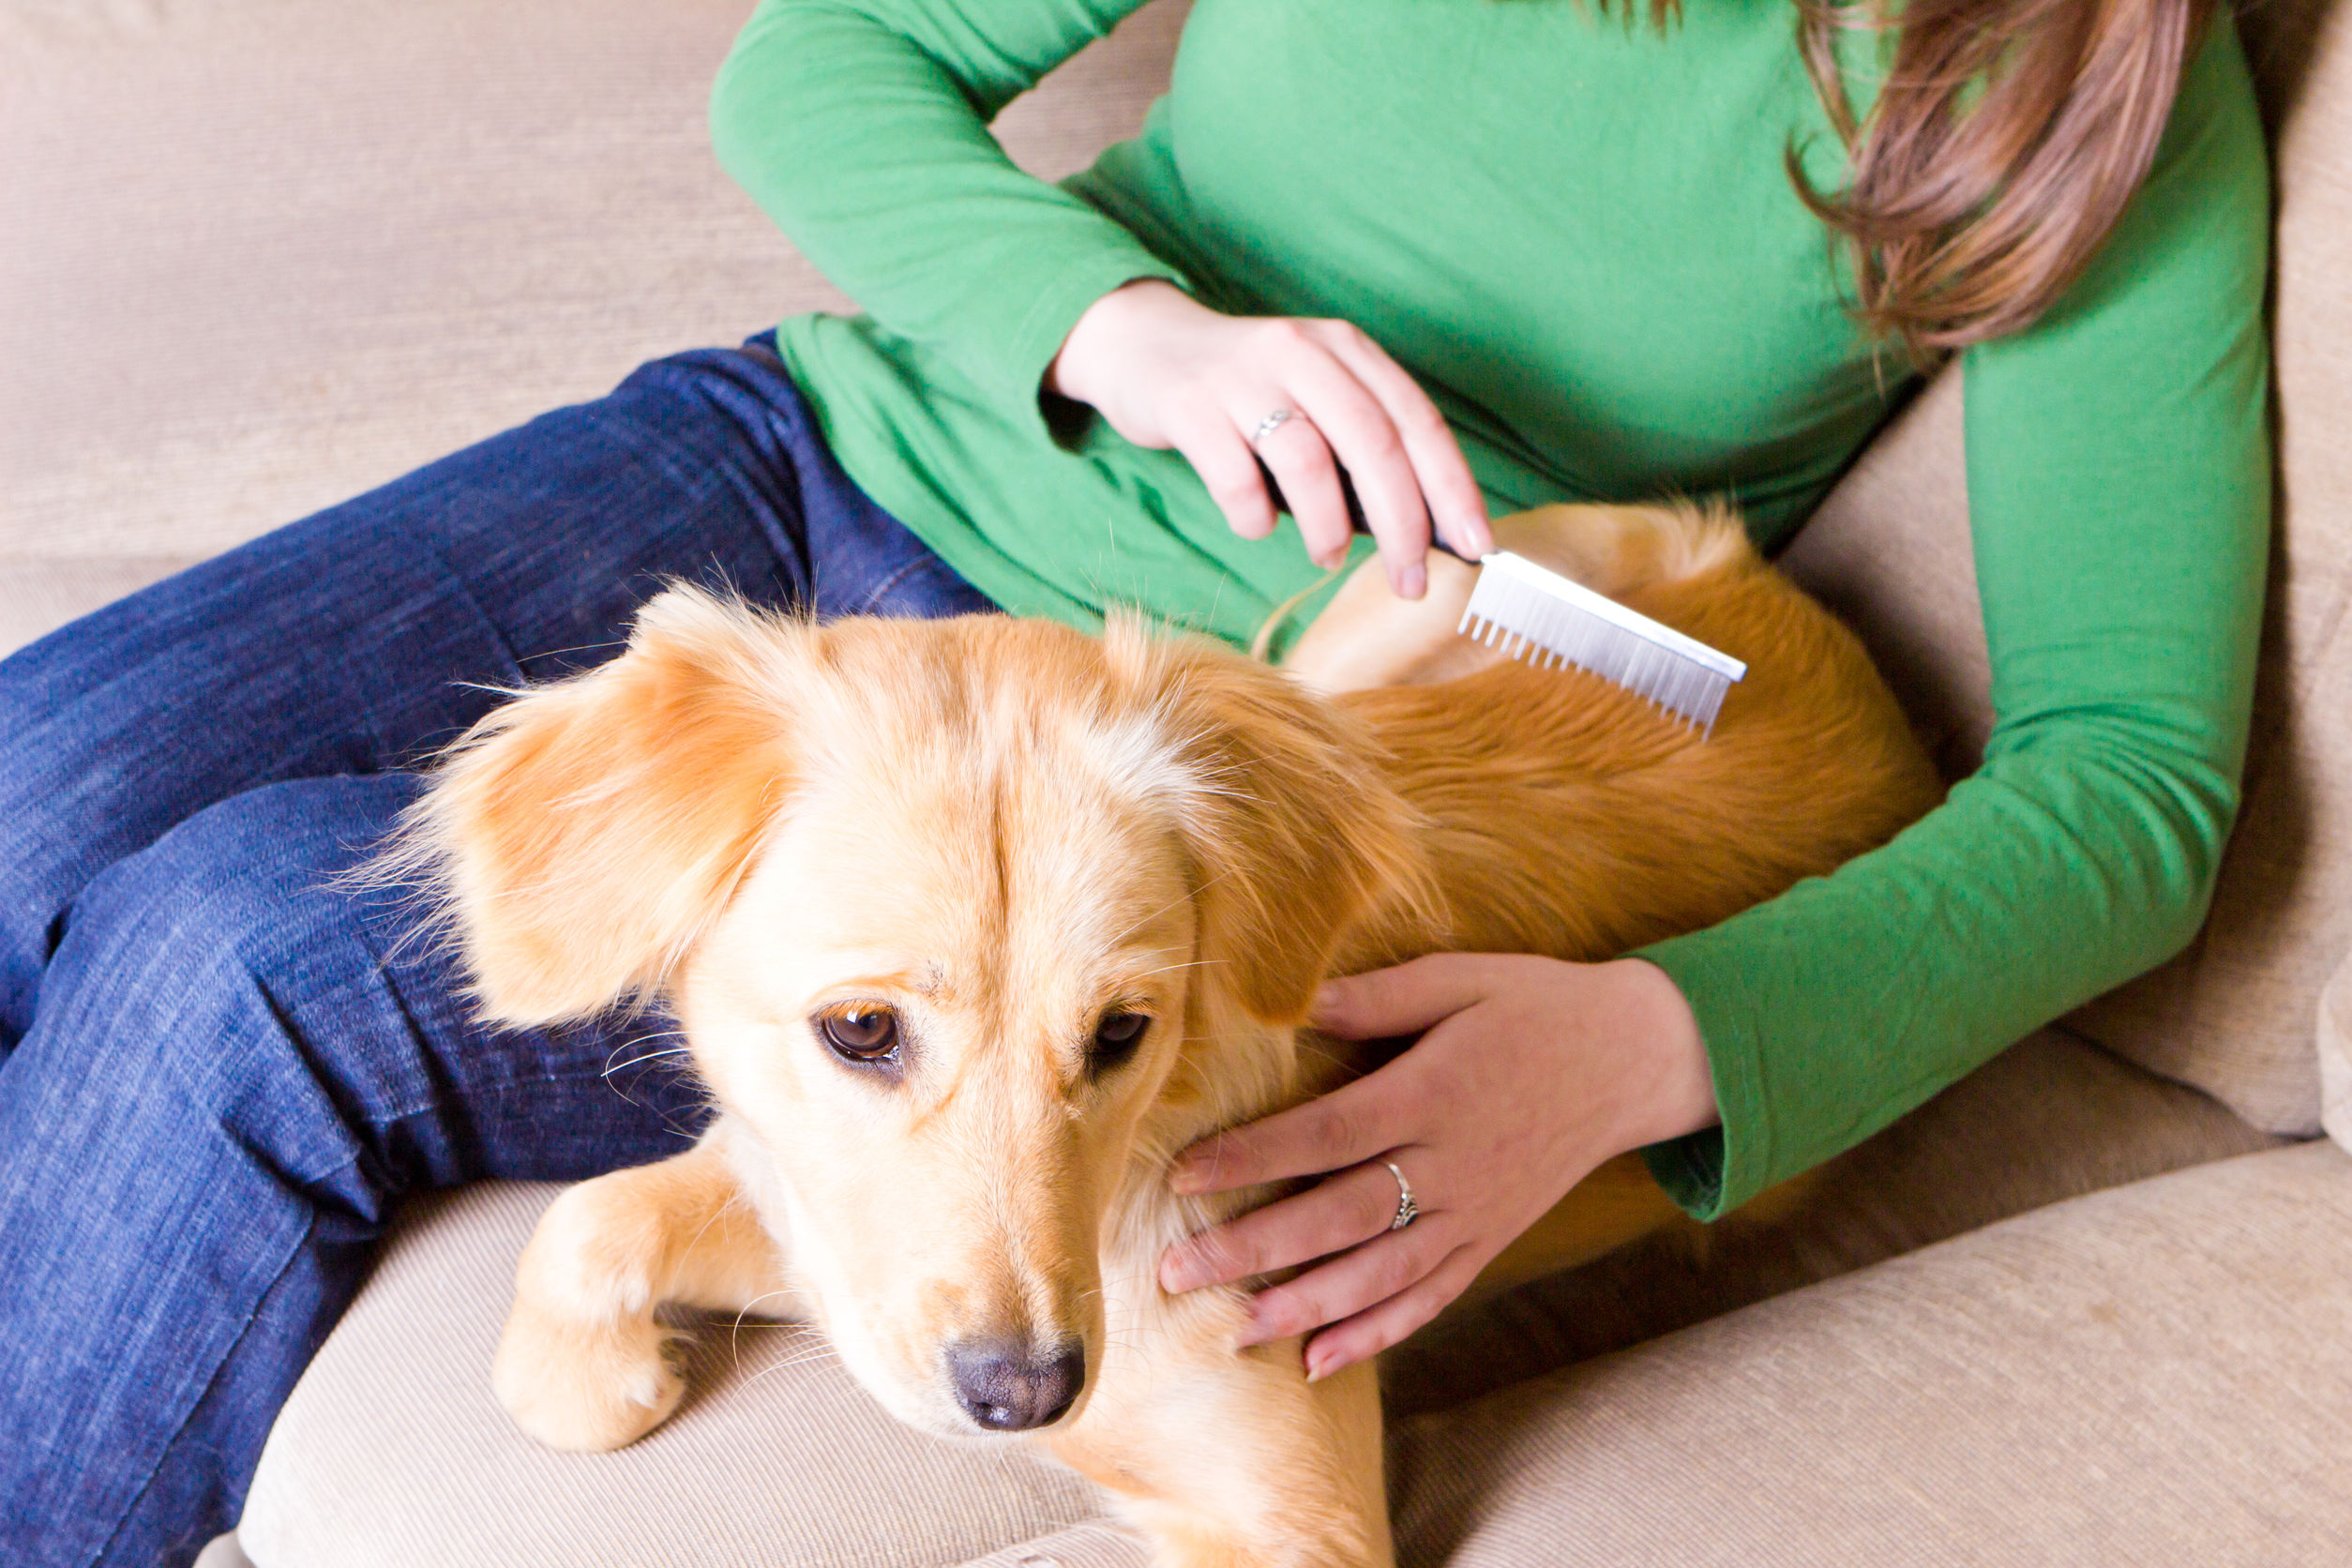 Young girl sitting on couch and combing her dog